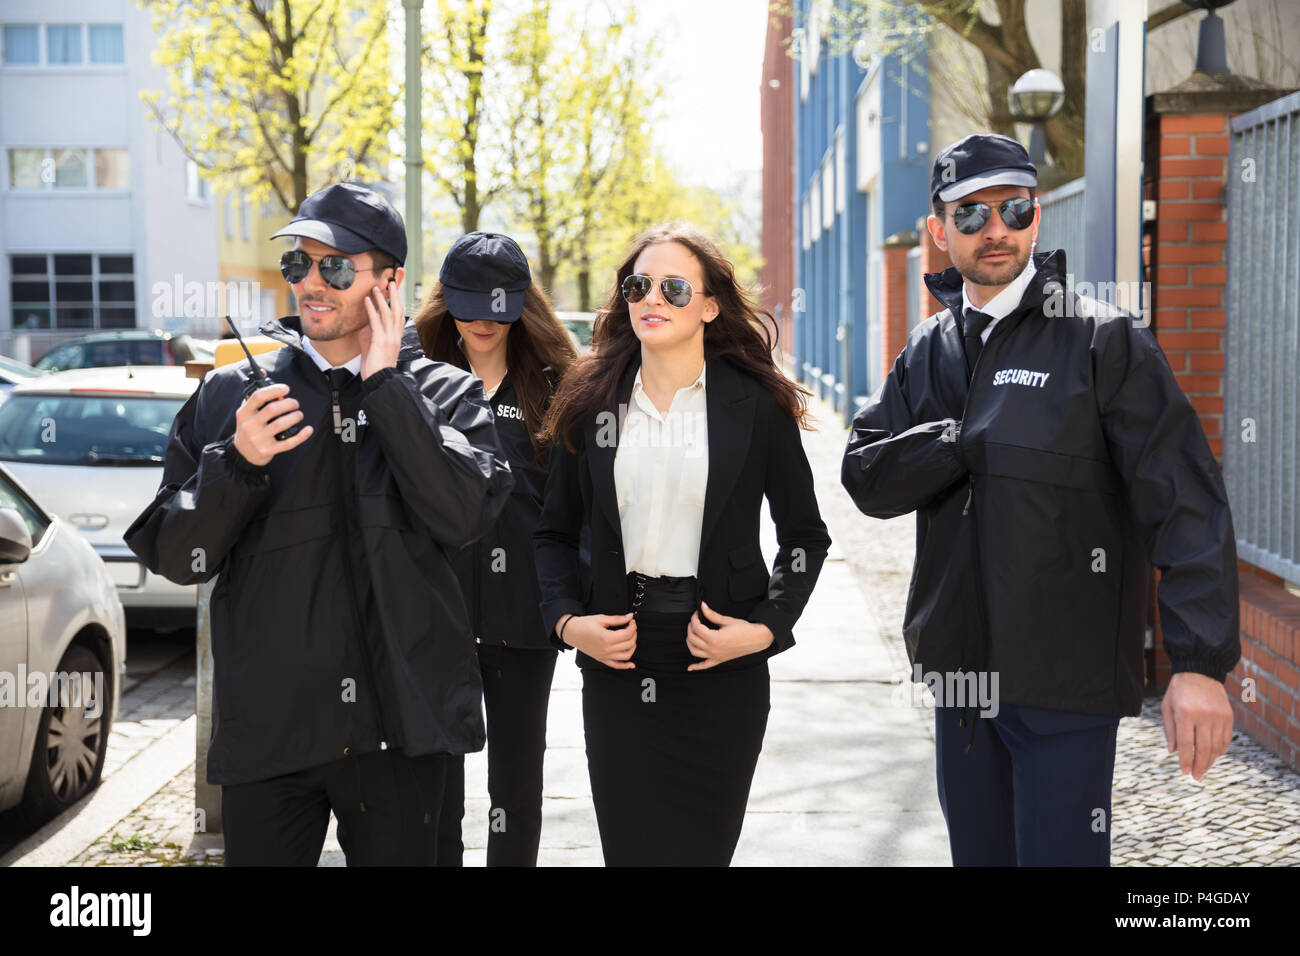 Portrait Of Young Female Celebrity With Bodyguards Walking On Sidewalk - Stock Image